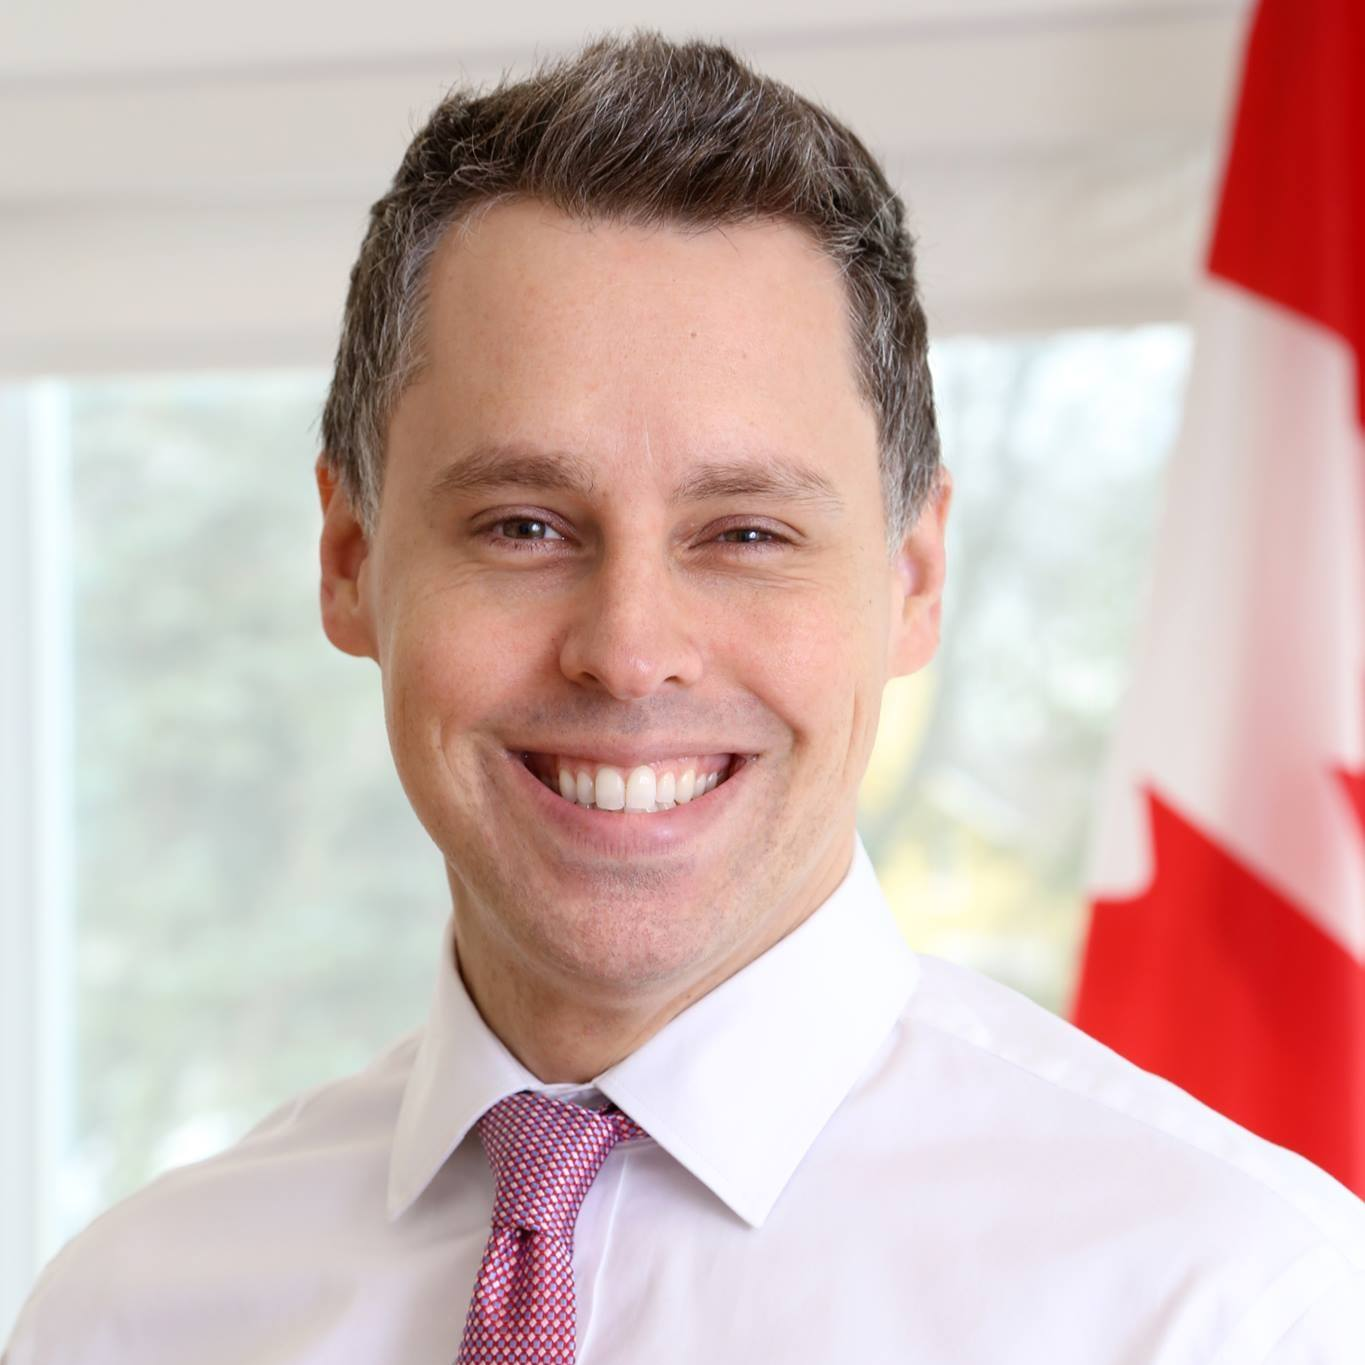 Parliamentary Secretary to the Minister of Environment and Climate Change